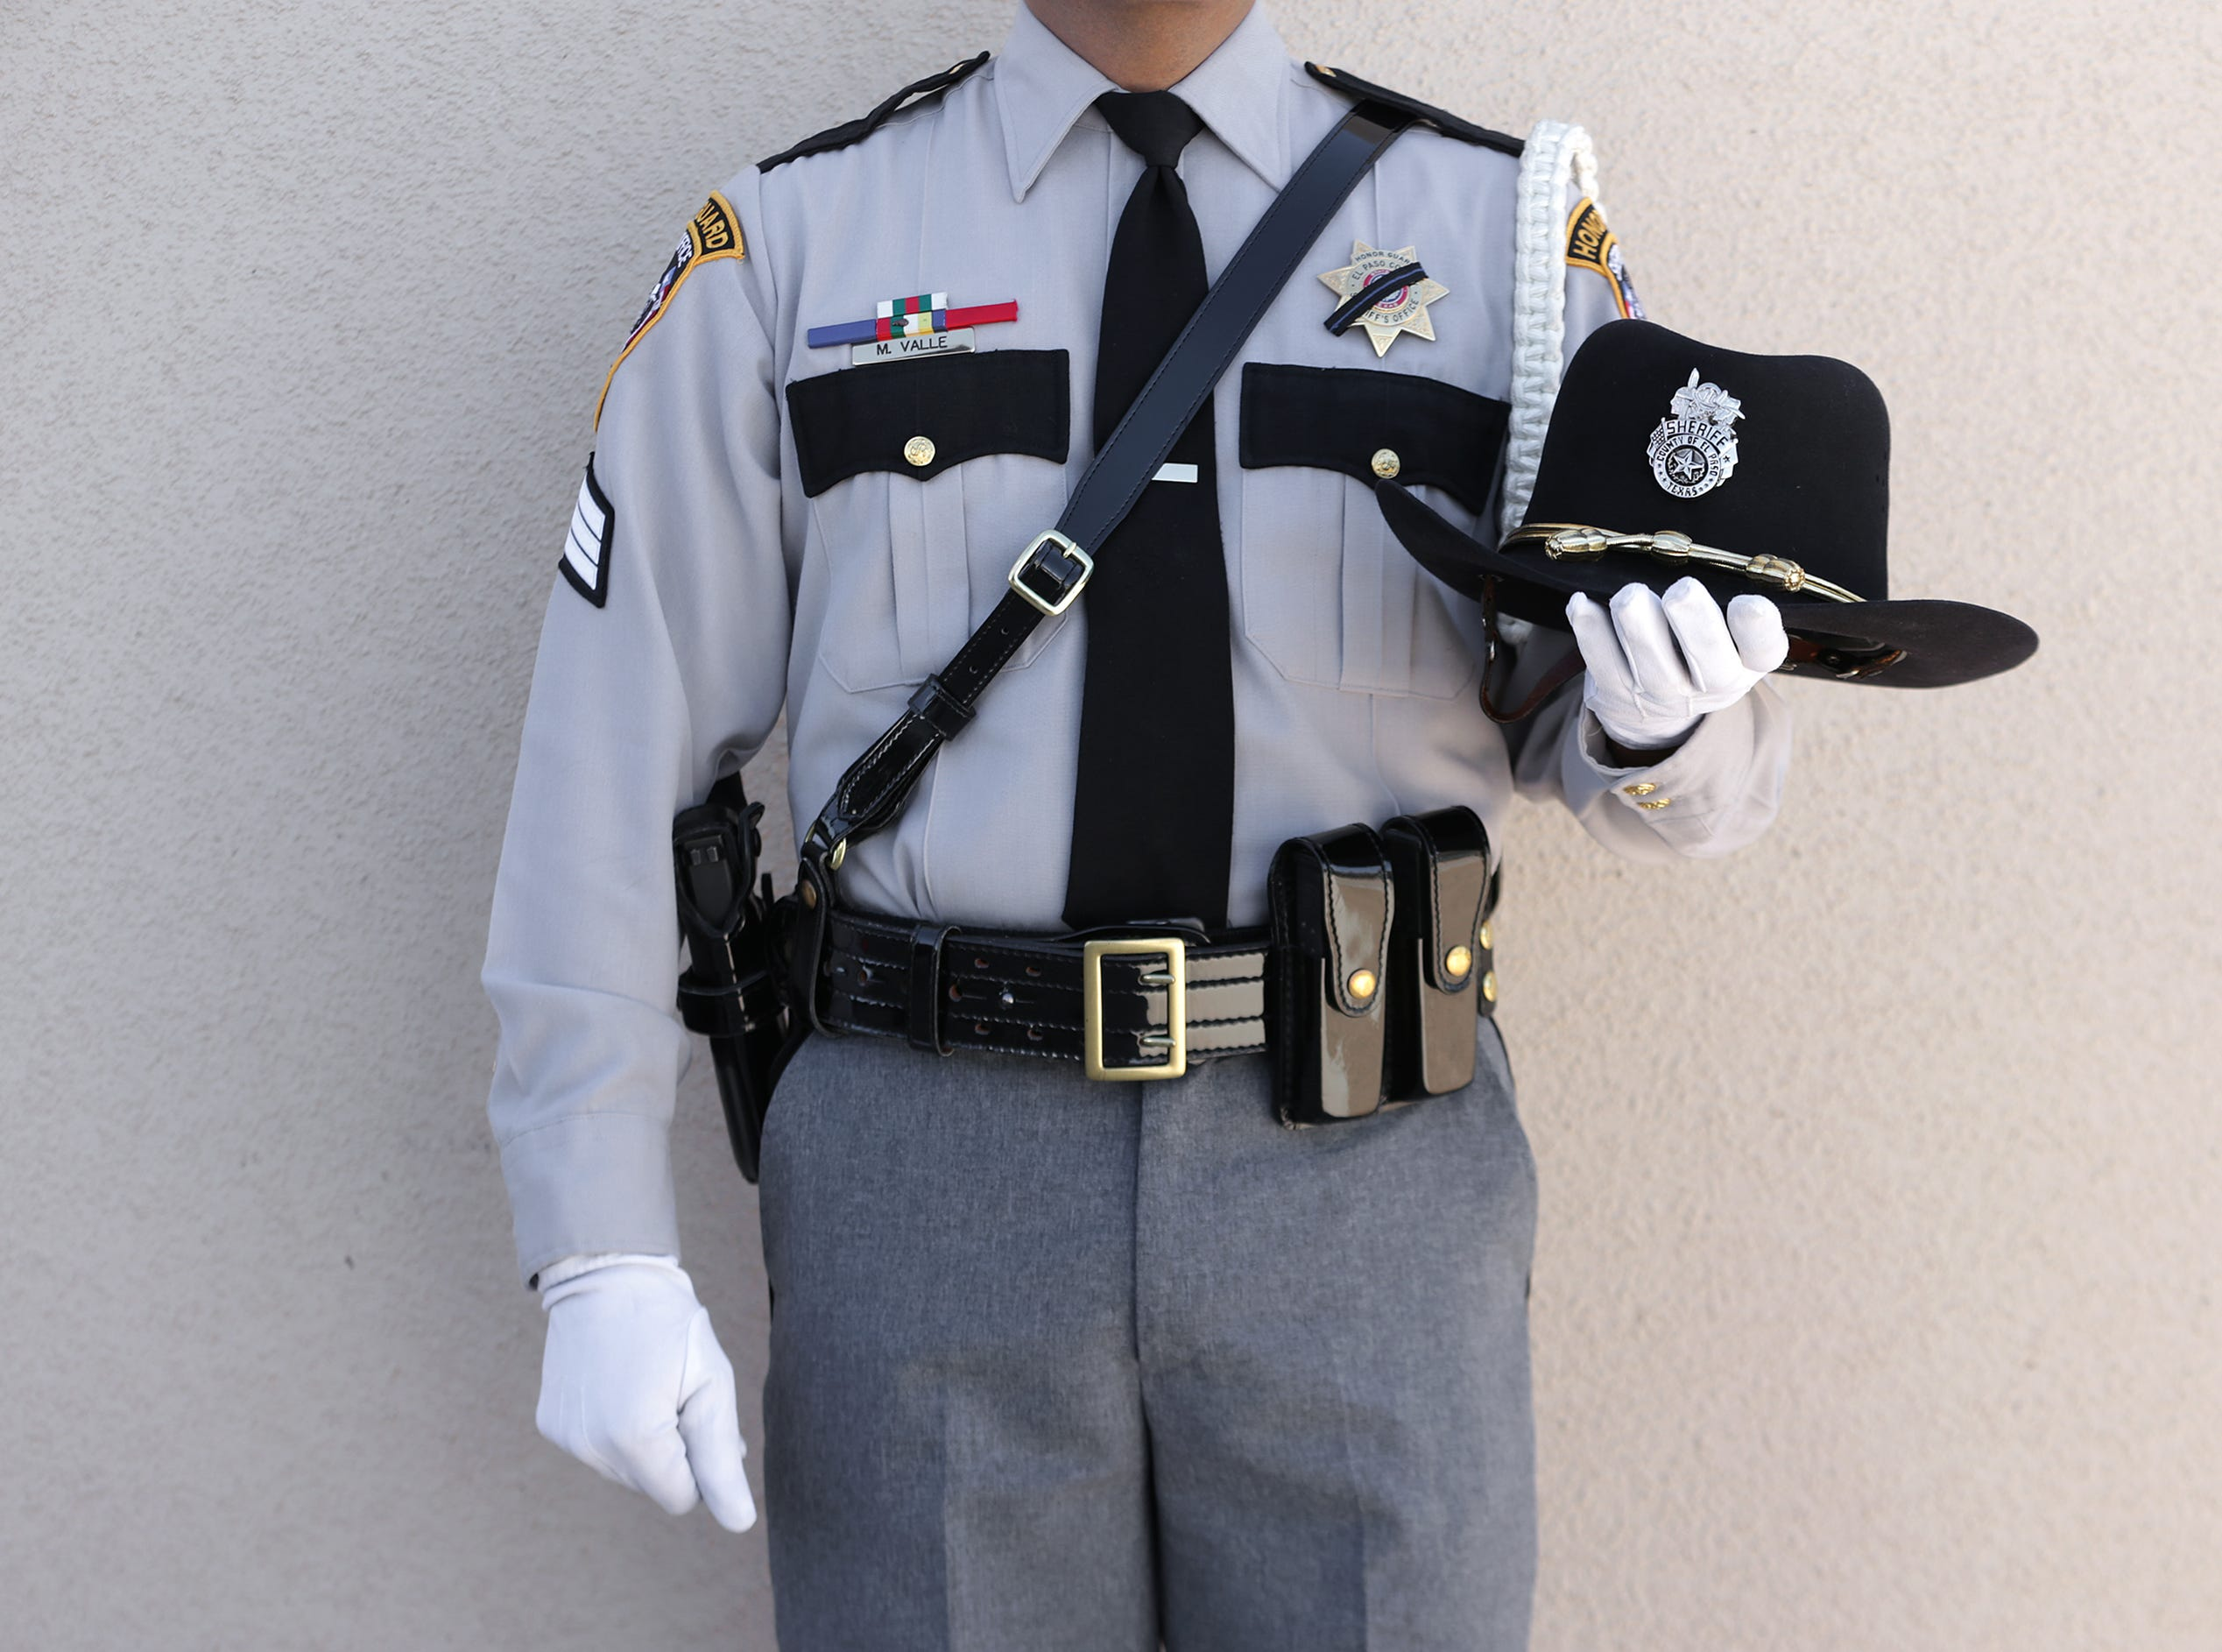 The El Paso County Sheriff's Office held their annual memorial Tuesday at their headquarters in east El Paso. Dep. Peter Herrera was added to the memorial this year after he was shot and killed during a traffic stop in San Elizario.